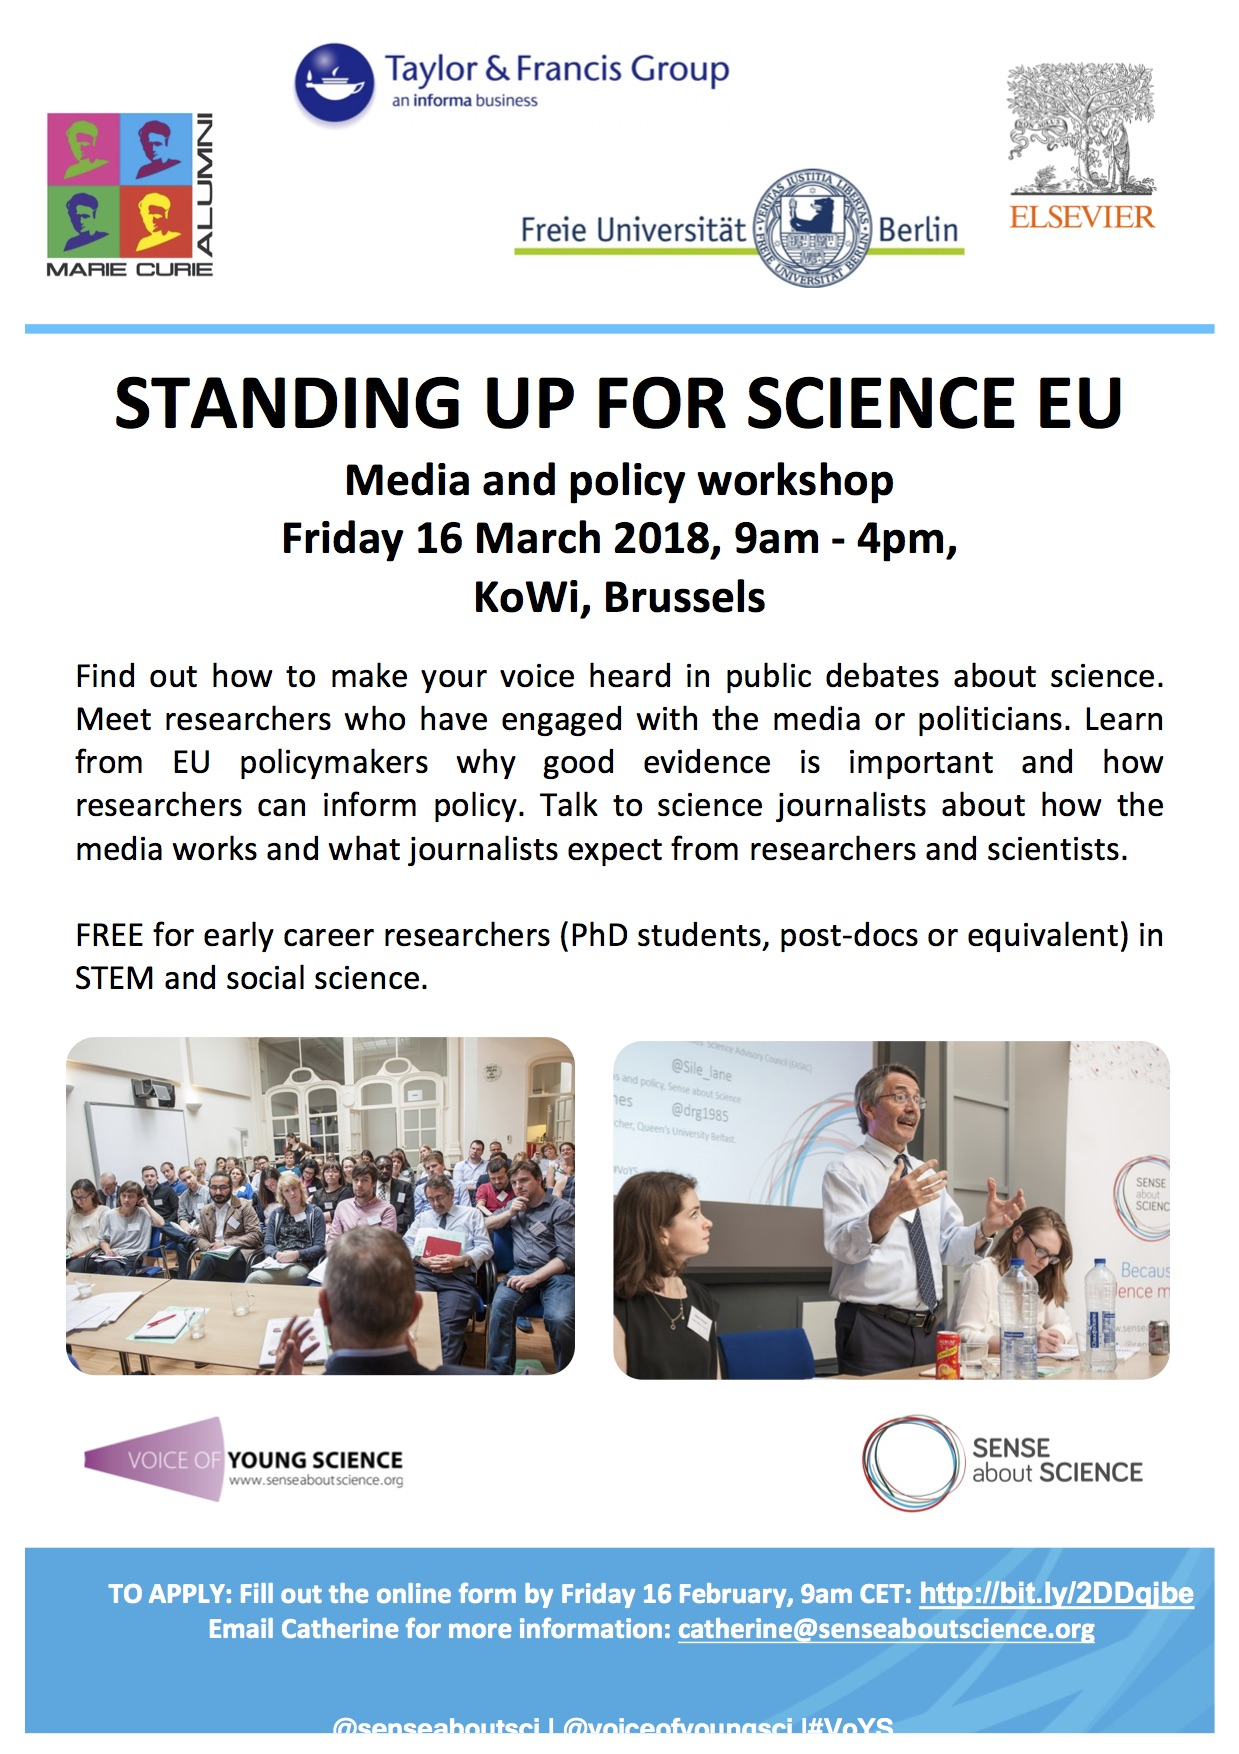 Standing up for Science EU workshop, Brussels, 16 March